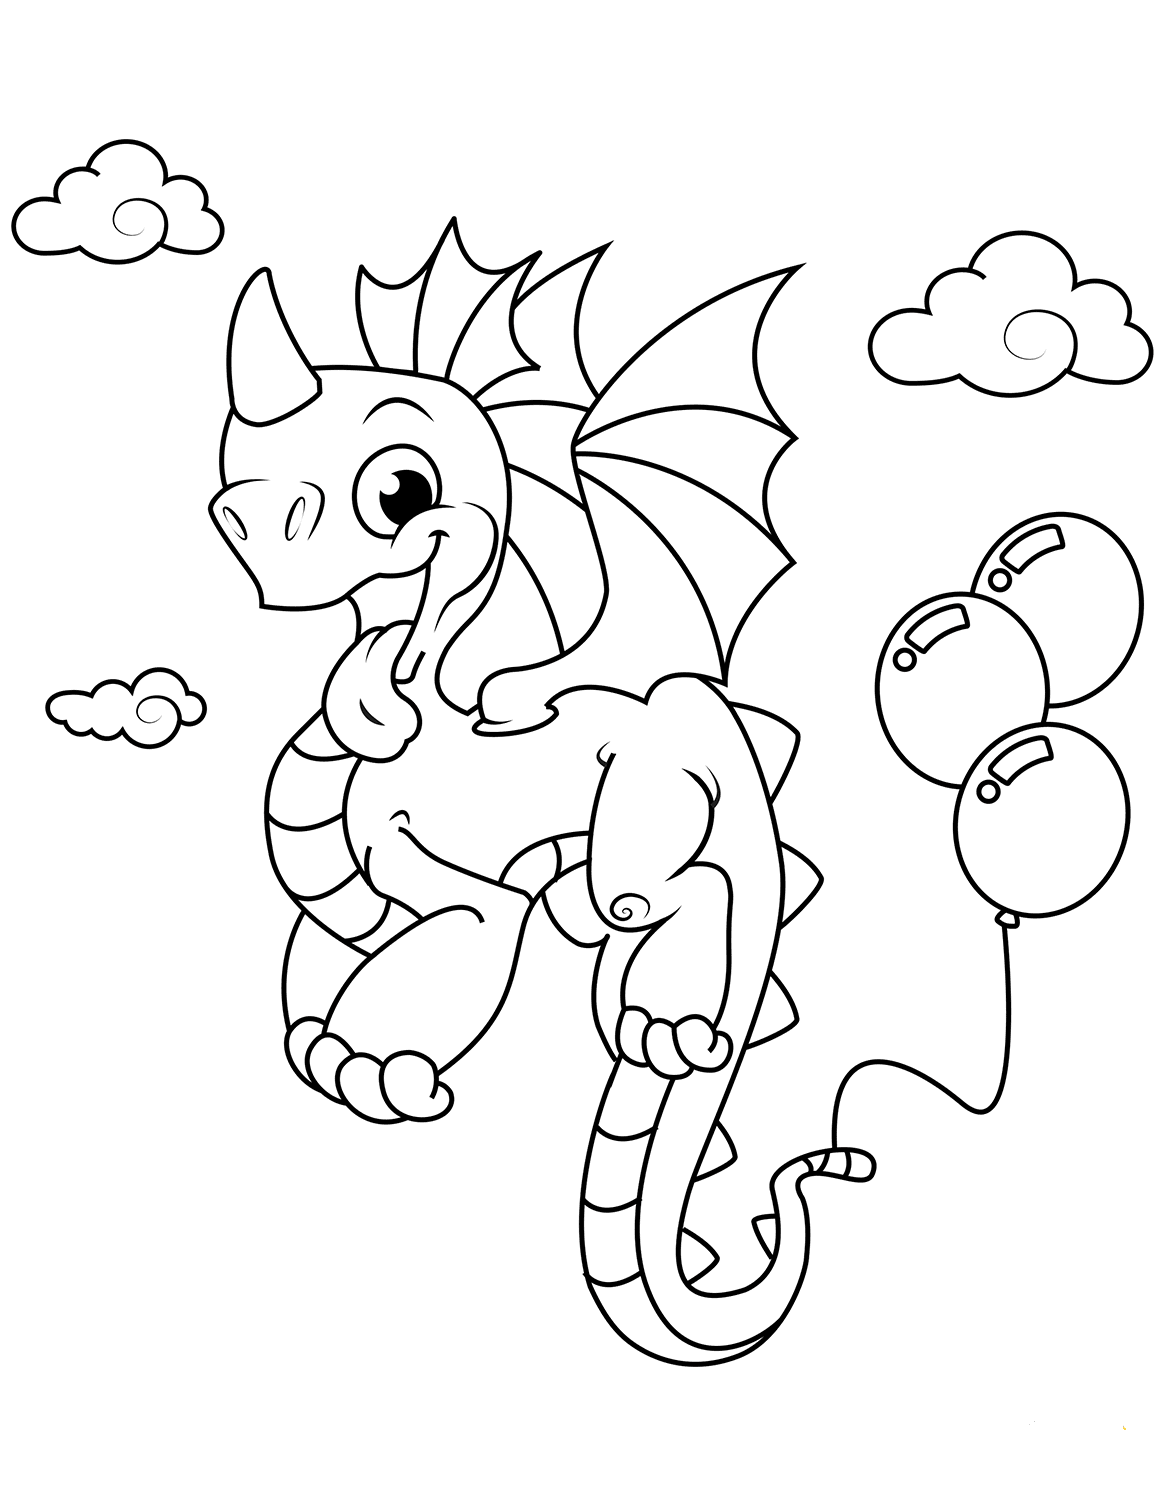 coloring pages of dragons 35 free printable dragon coloring pages dragons coloring pages of